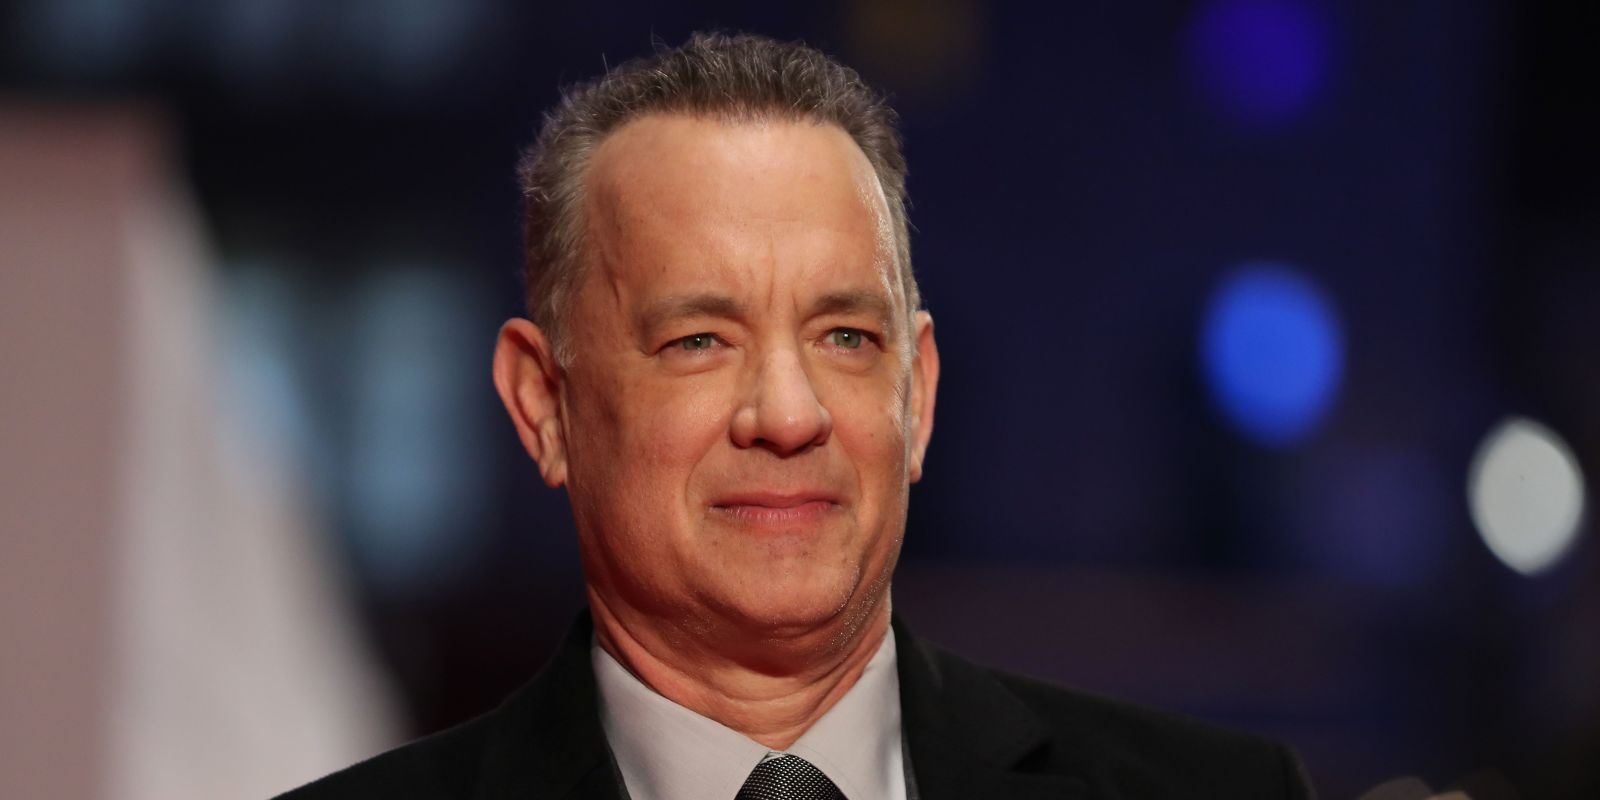 The Post's Tom Hanks: 'TV kicks movies' ass when it comes down to diversity'